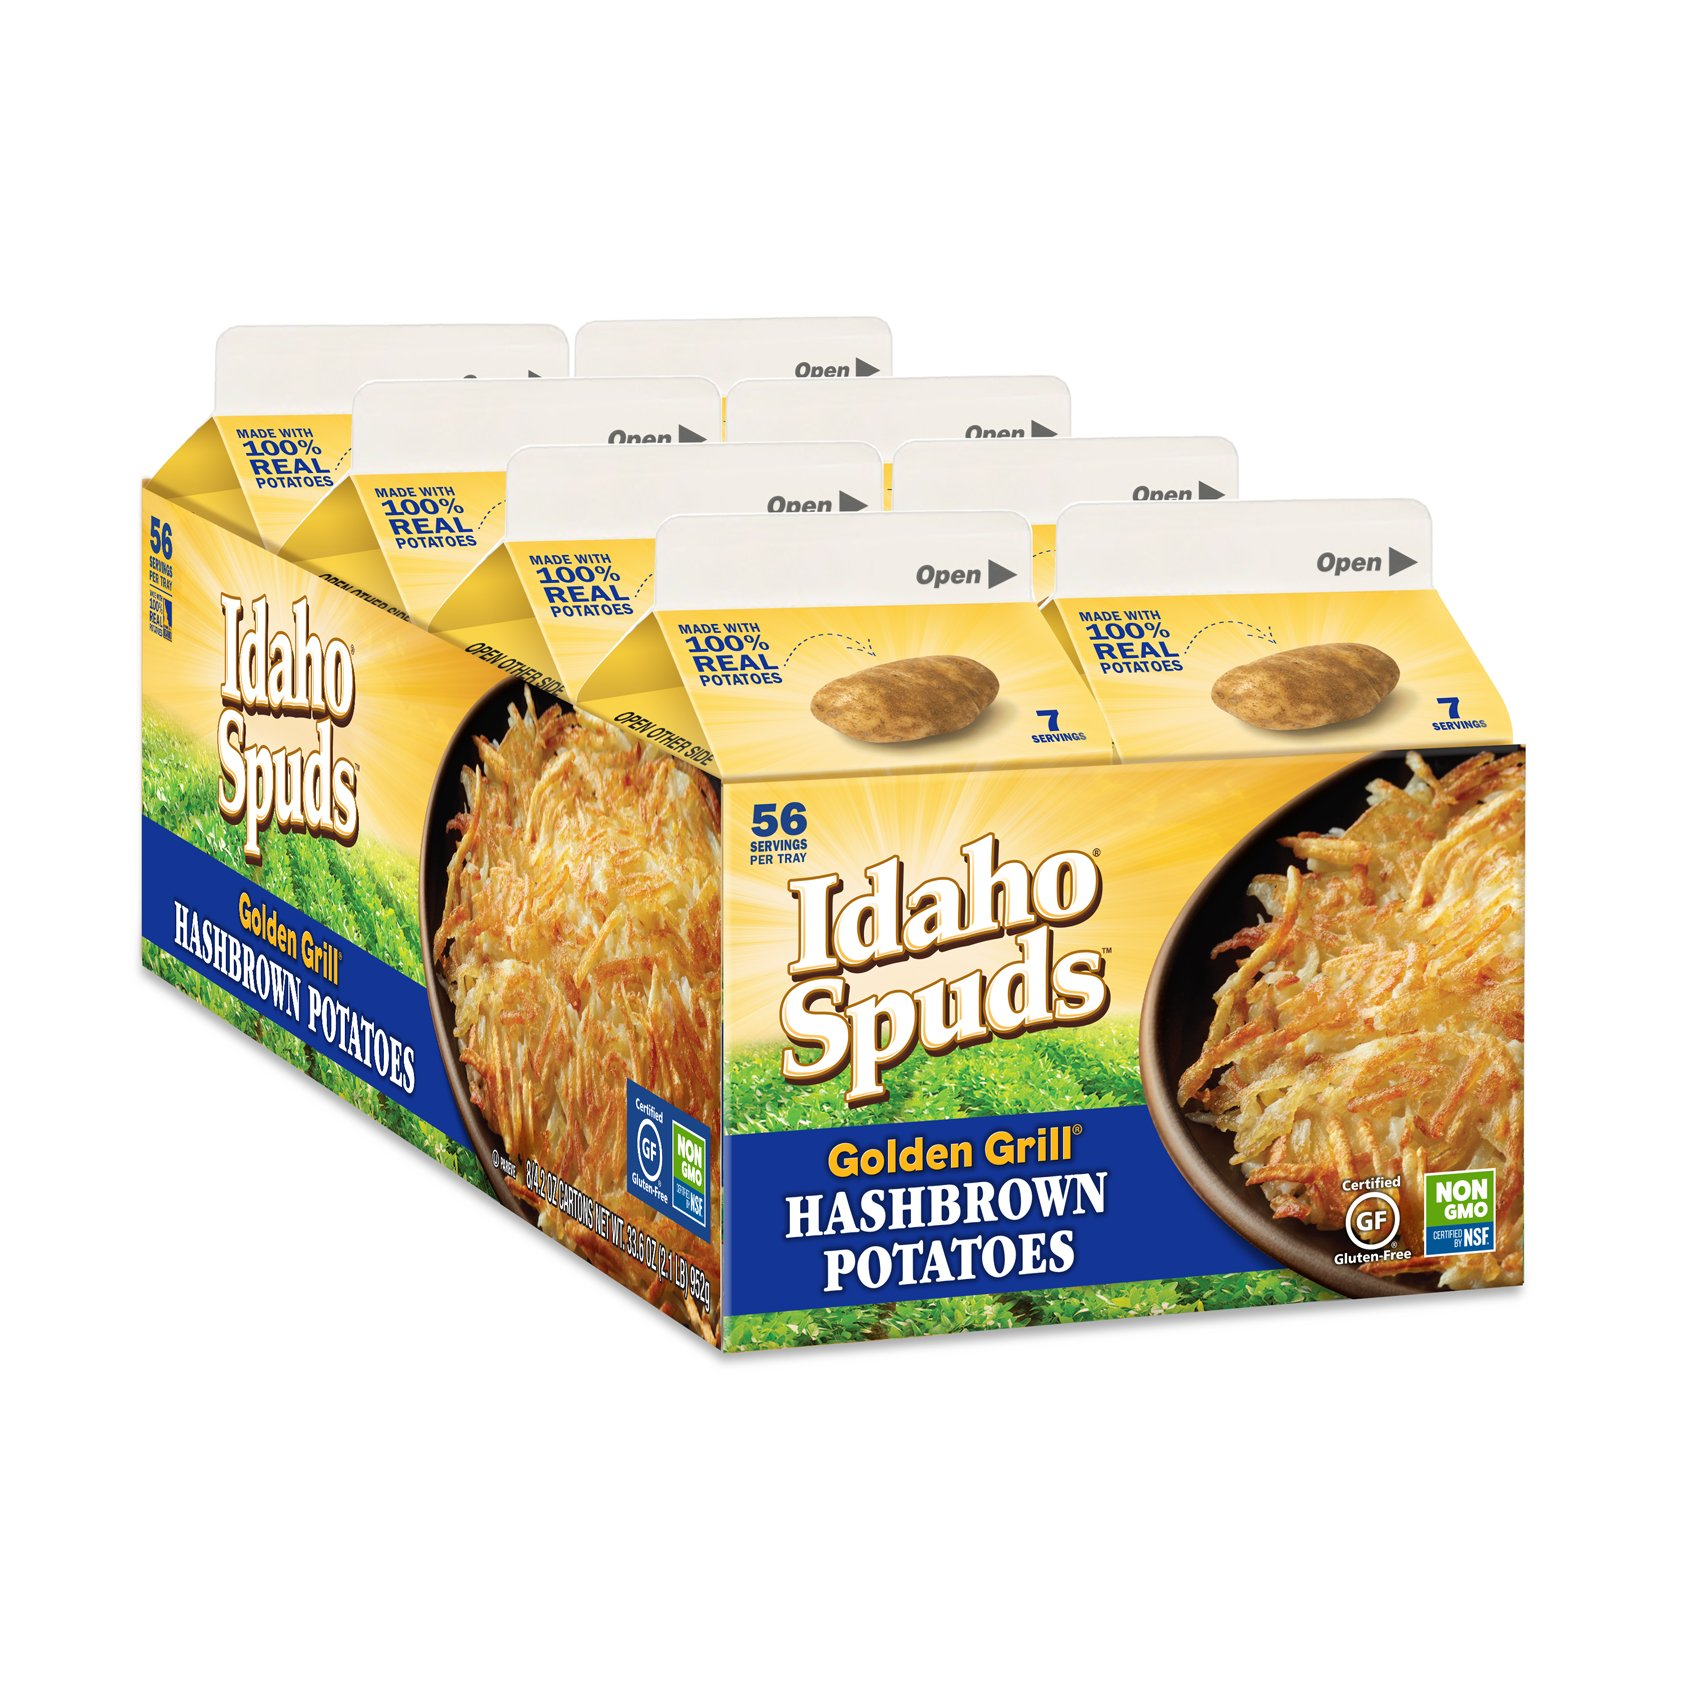 Idaho Spuds Non GMO Gluten Free Golden Grill Hashbrowns, 8 Count